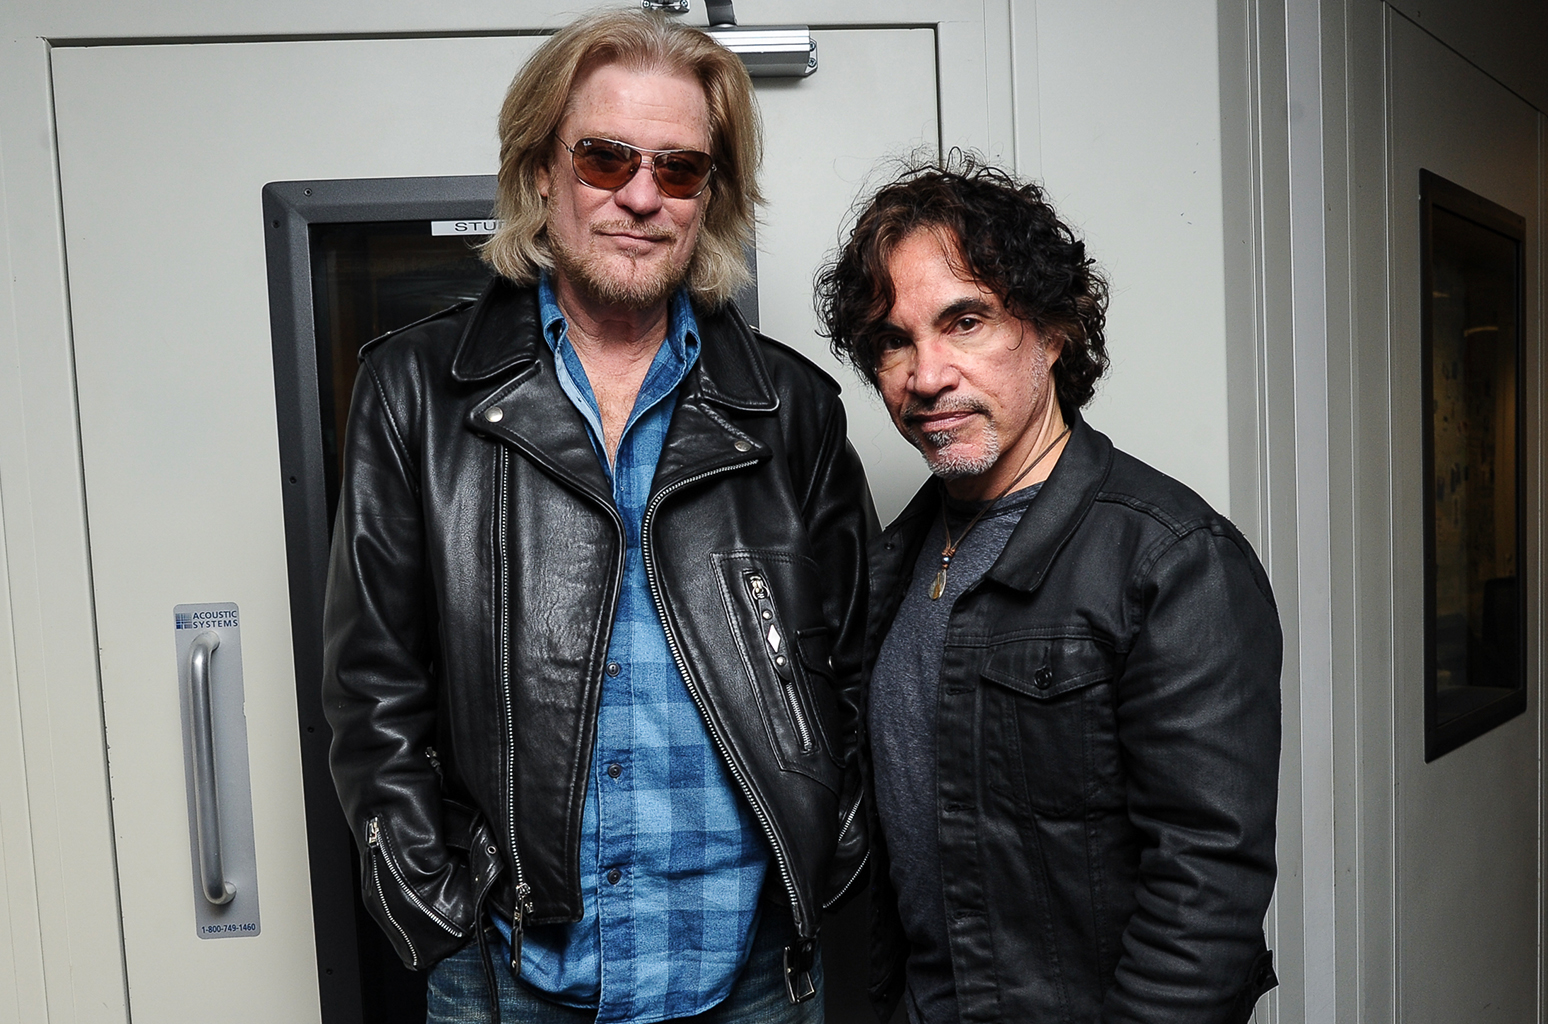 Hall & Oates: devoradores de hits